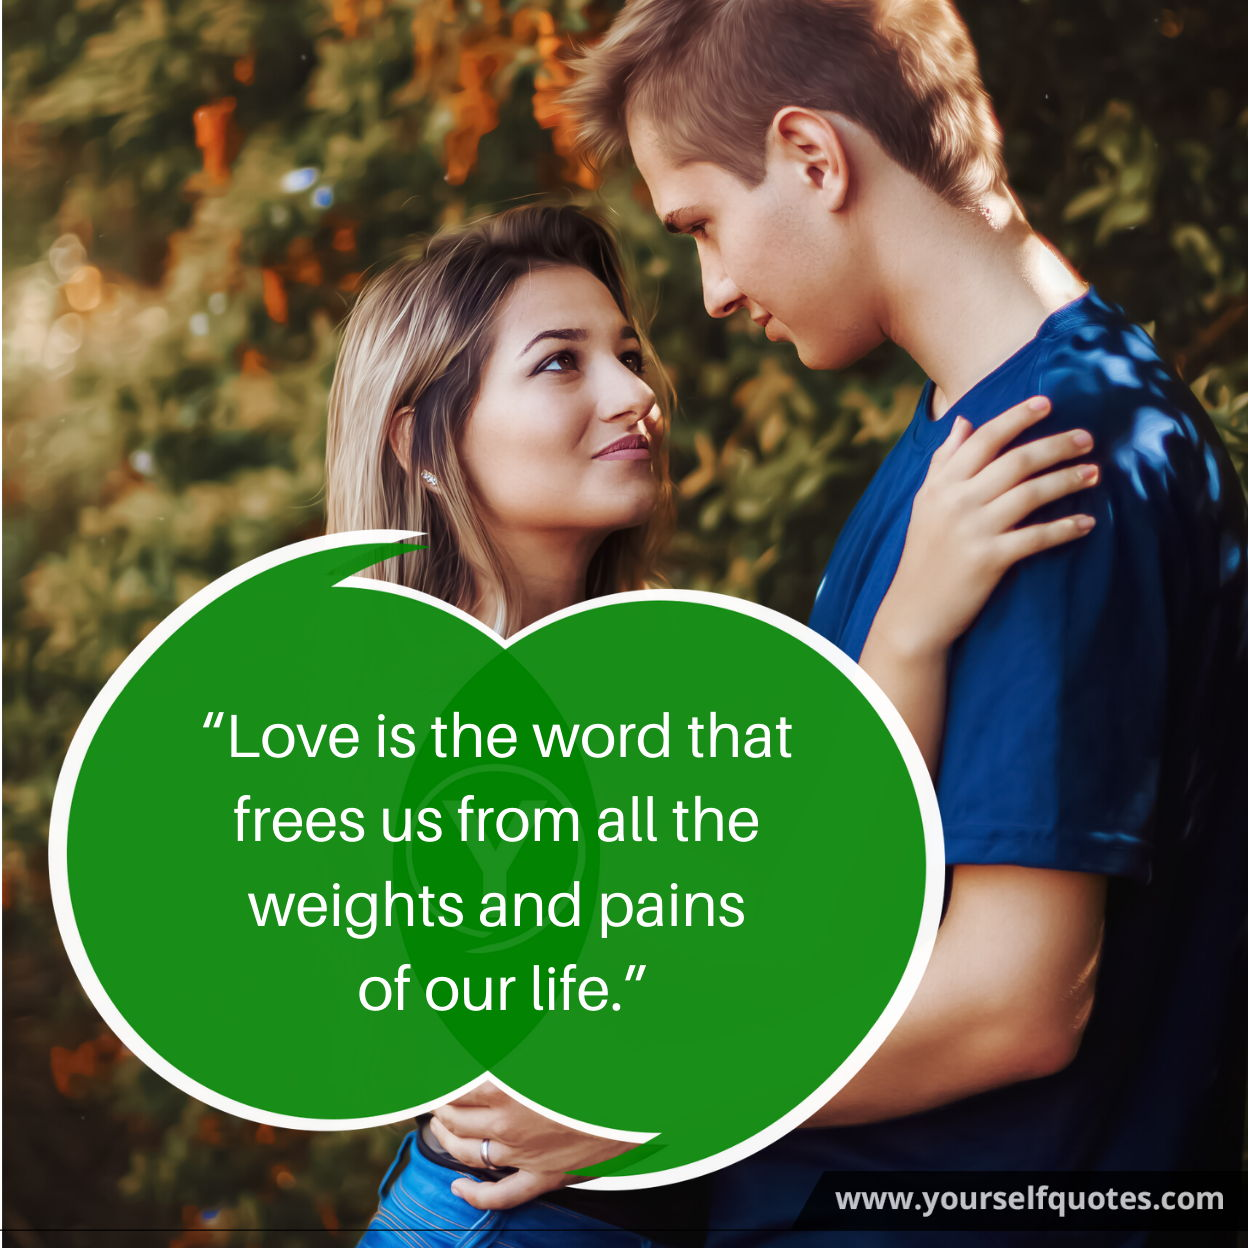 Quotes on Love Life